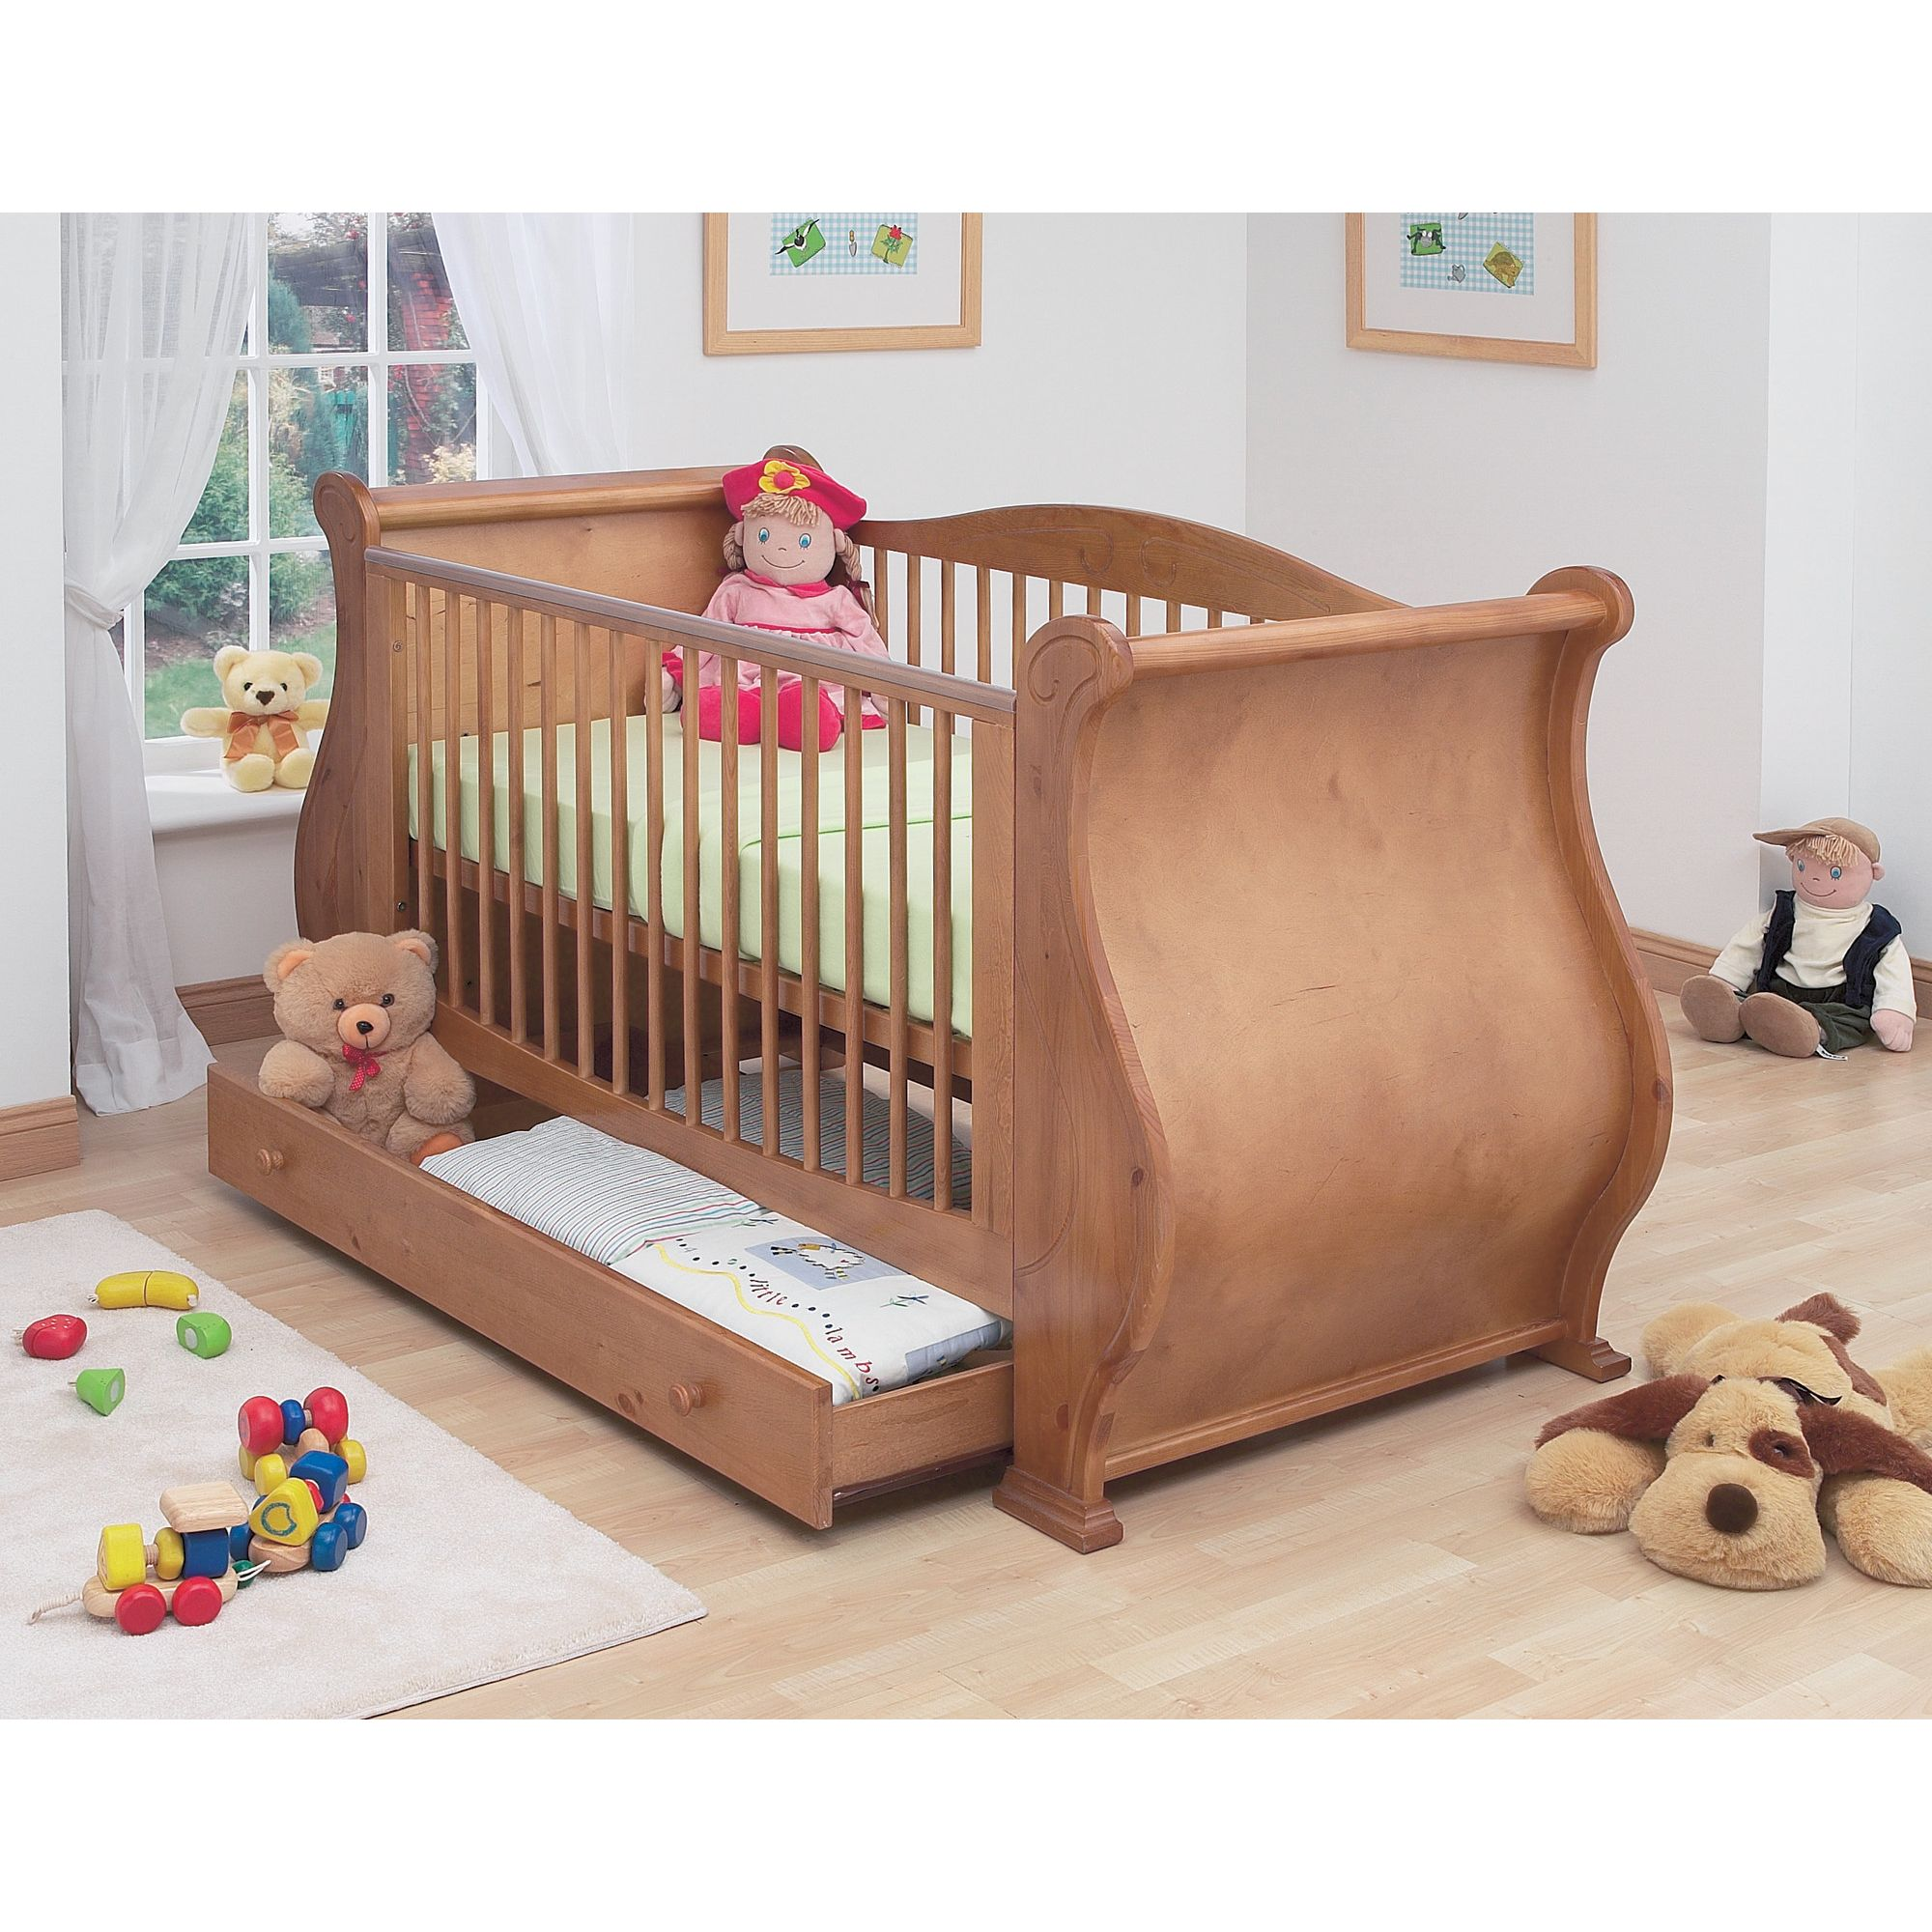 Tutti Bambini Louis Sleigh Cot Bed with Drawer in Old English at Tesco Direct